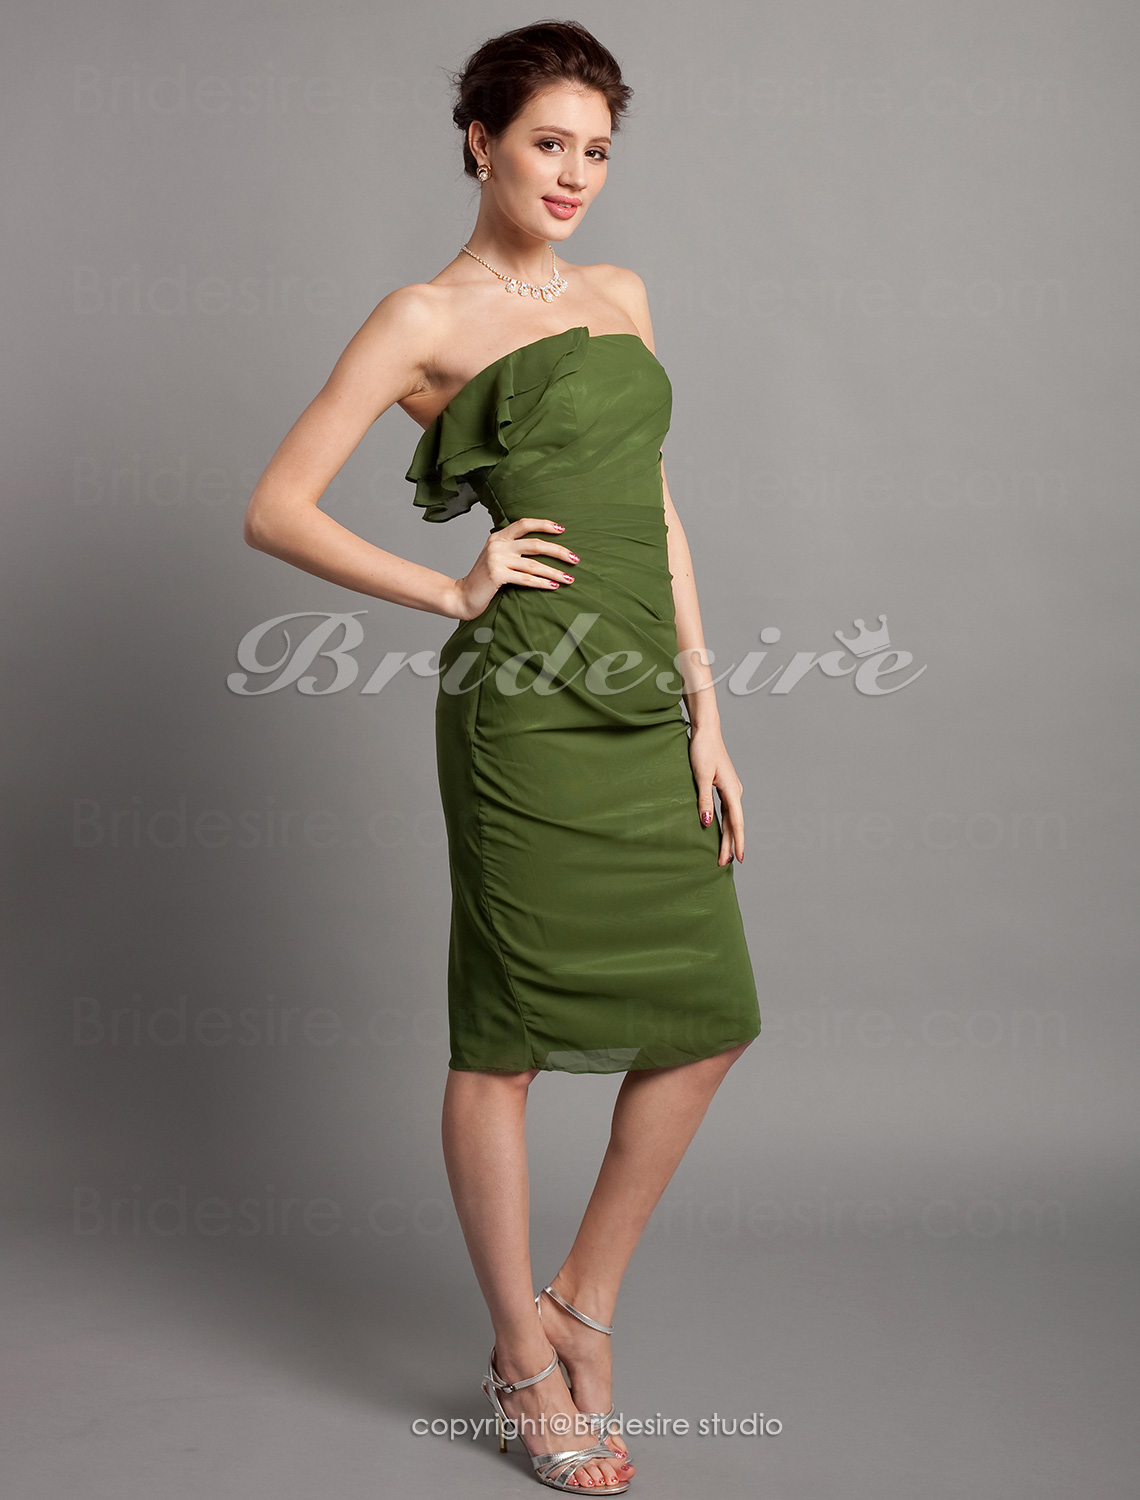 Sheath/ Column Chiffon Knee-length Strapless Bridesmaid Dress